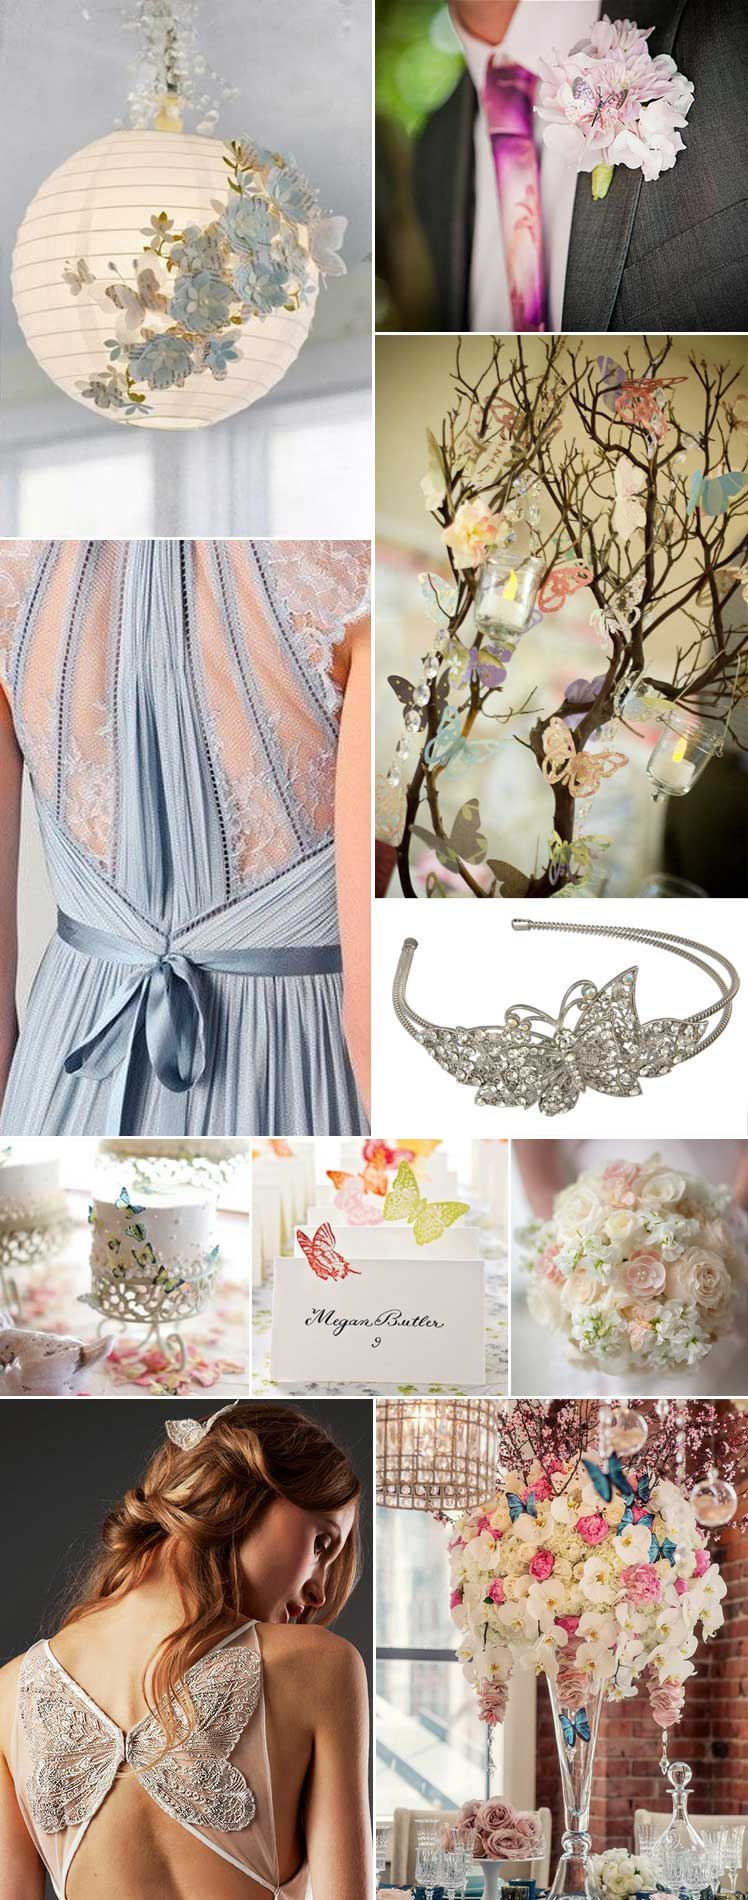 style ideas for a butterfly wedding theme